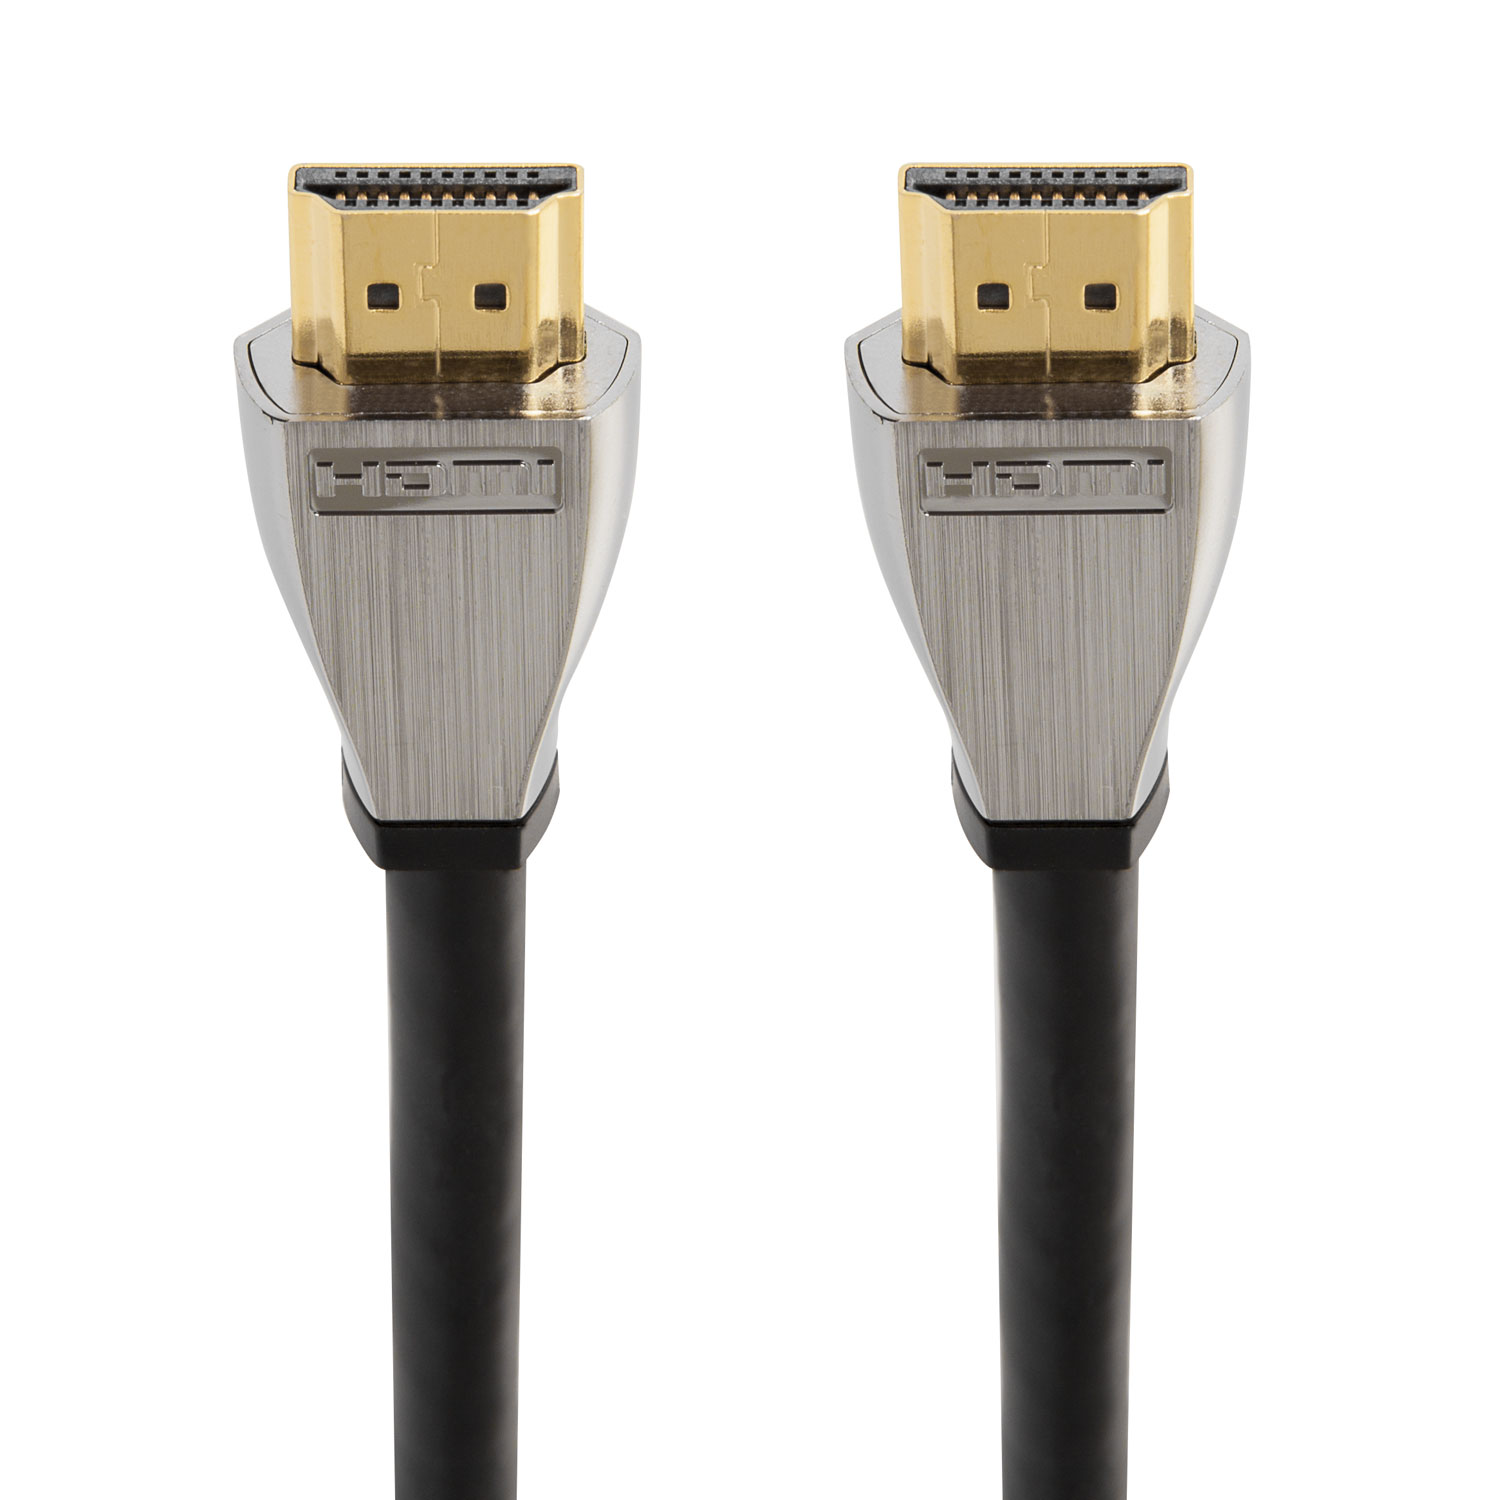 HDMI Cables - High Speed & Standard HDMI Cables - Best Buy Canada